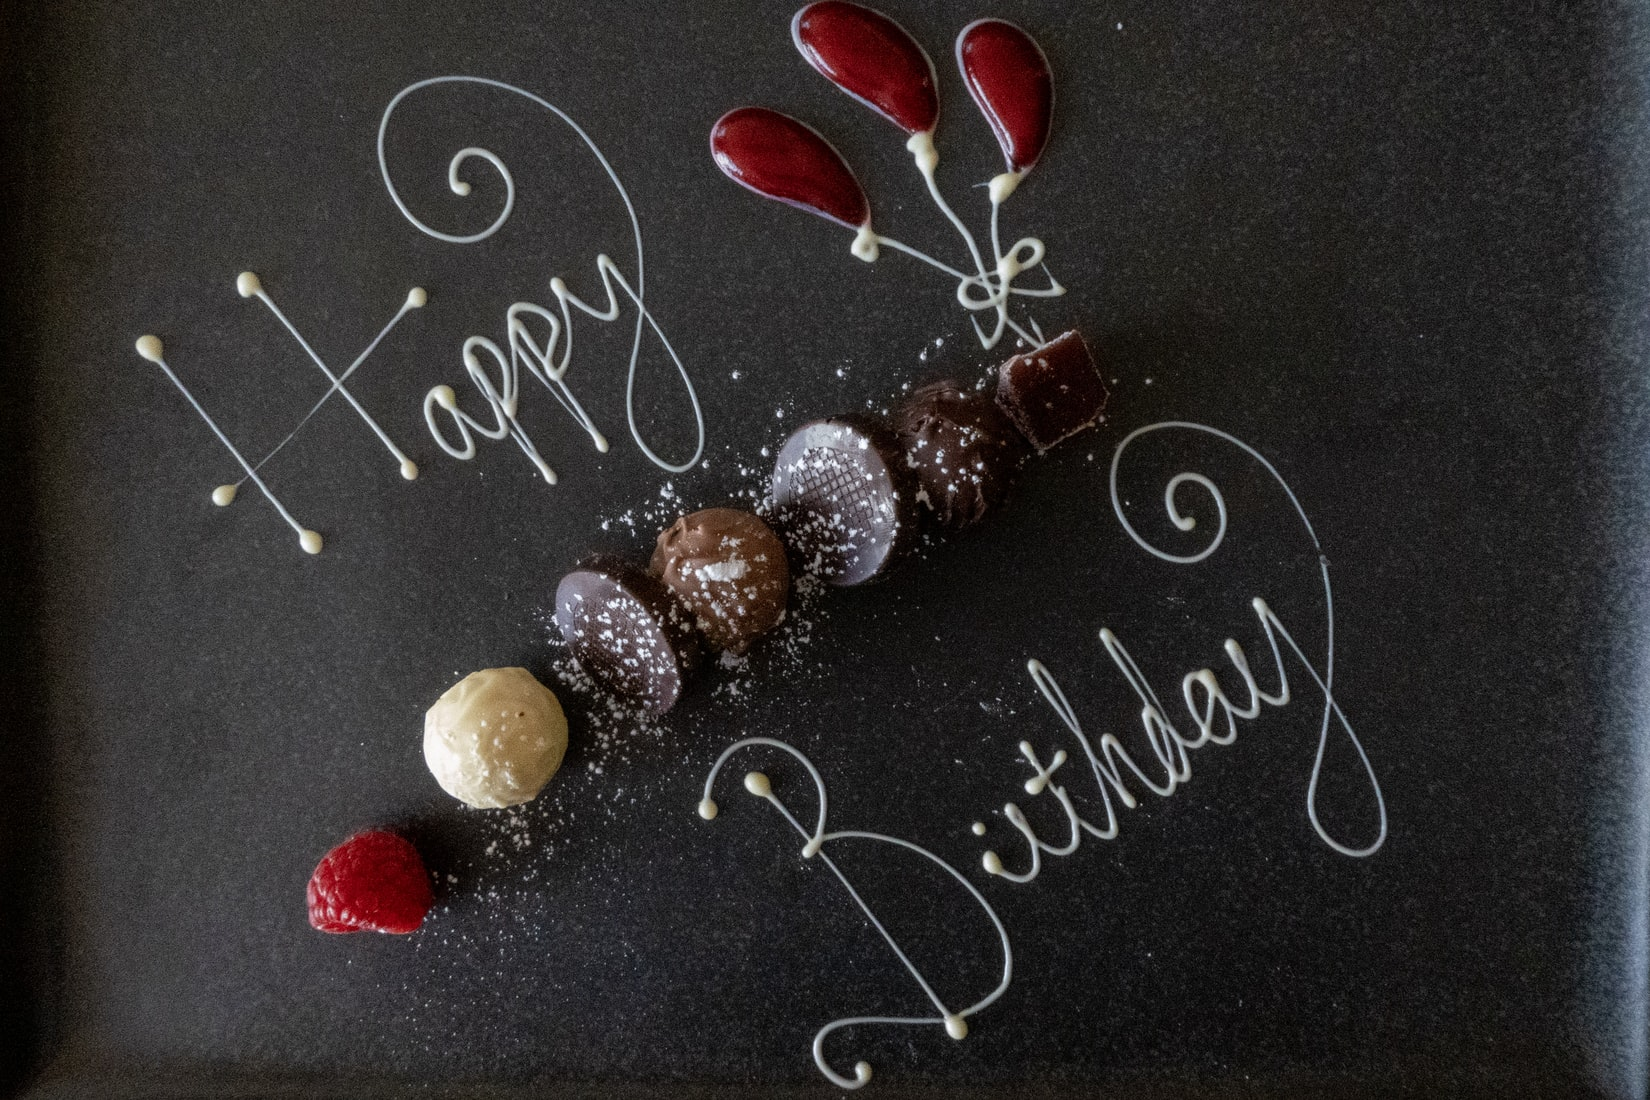 The Happy Birthday Song can help you know how to improve your voice for public speaking.